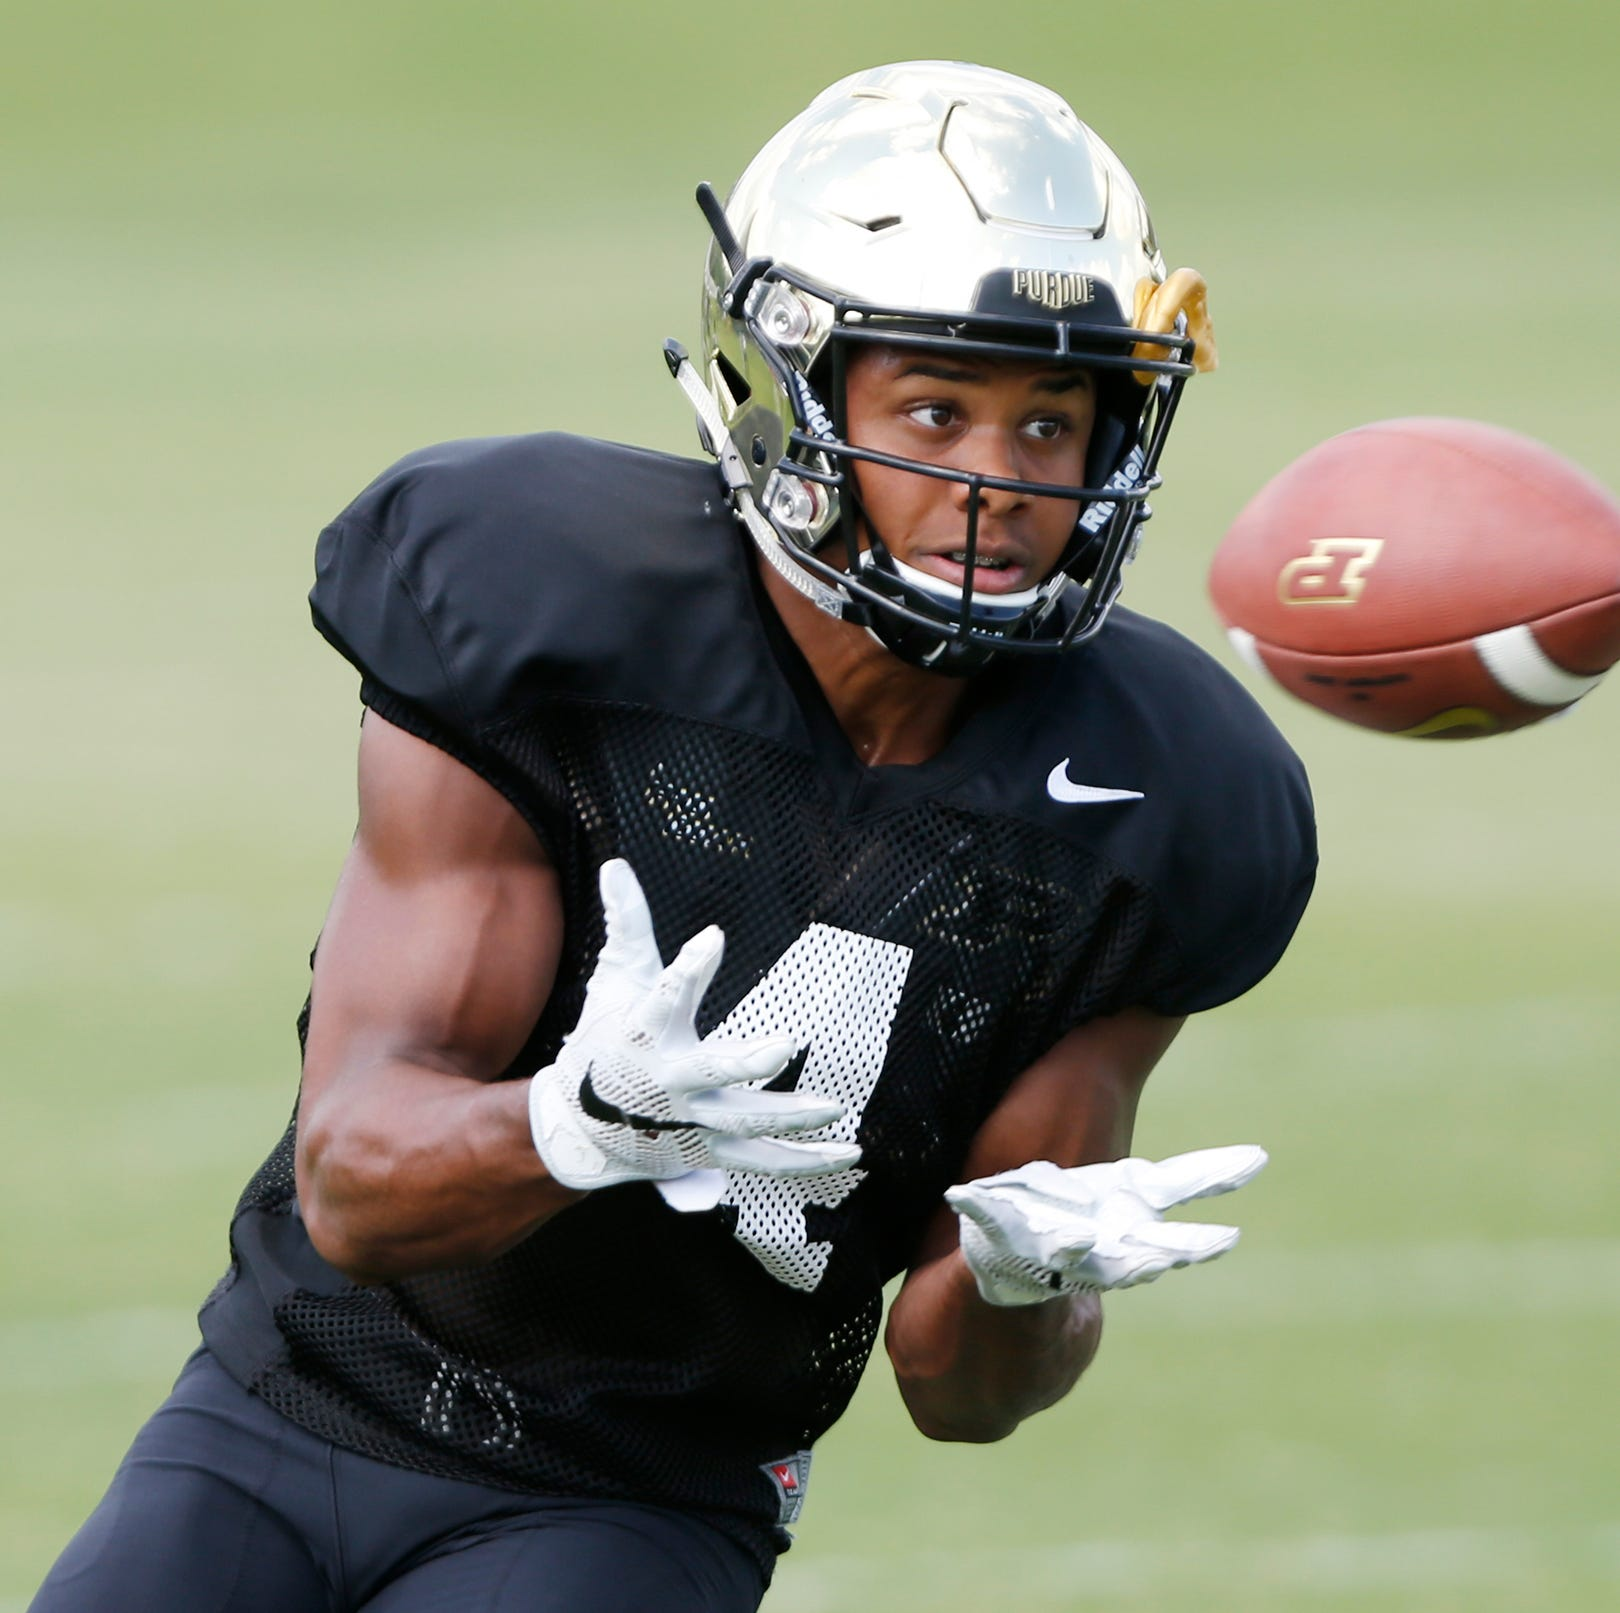 Purdue vs. Northwestern football: How to watch on TV and stream online